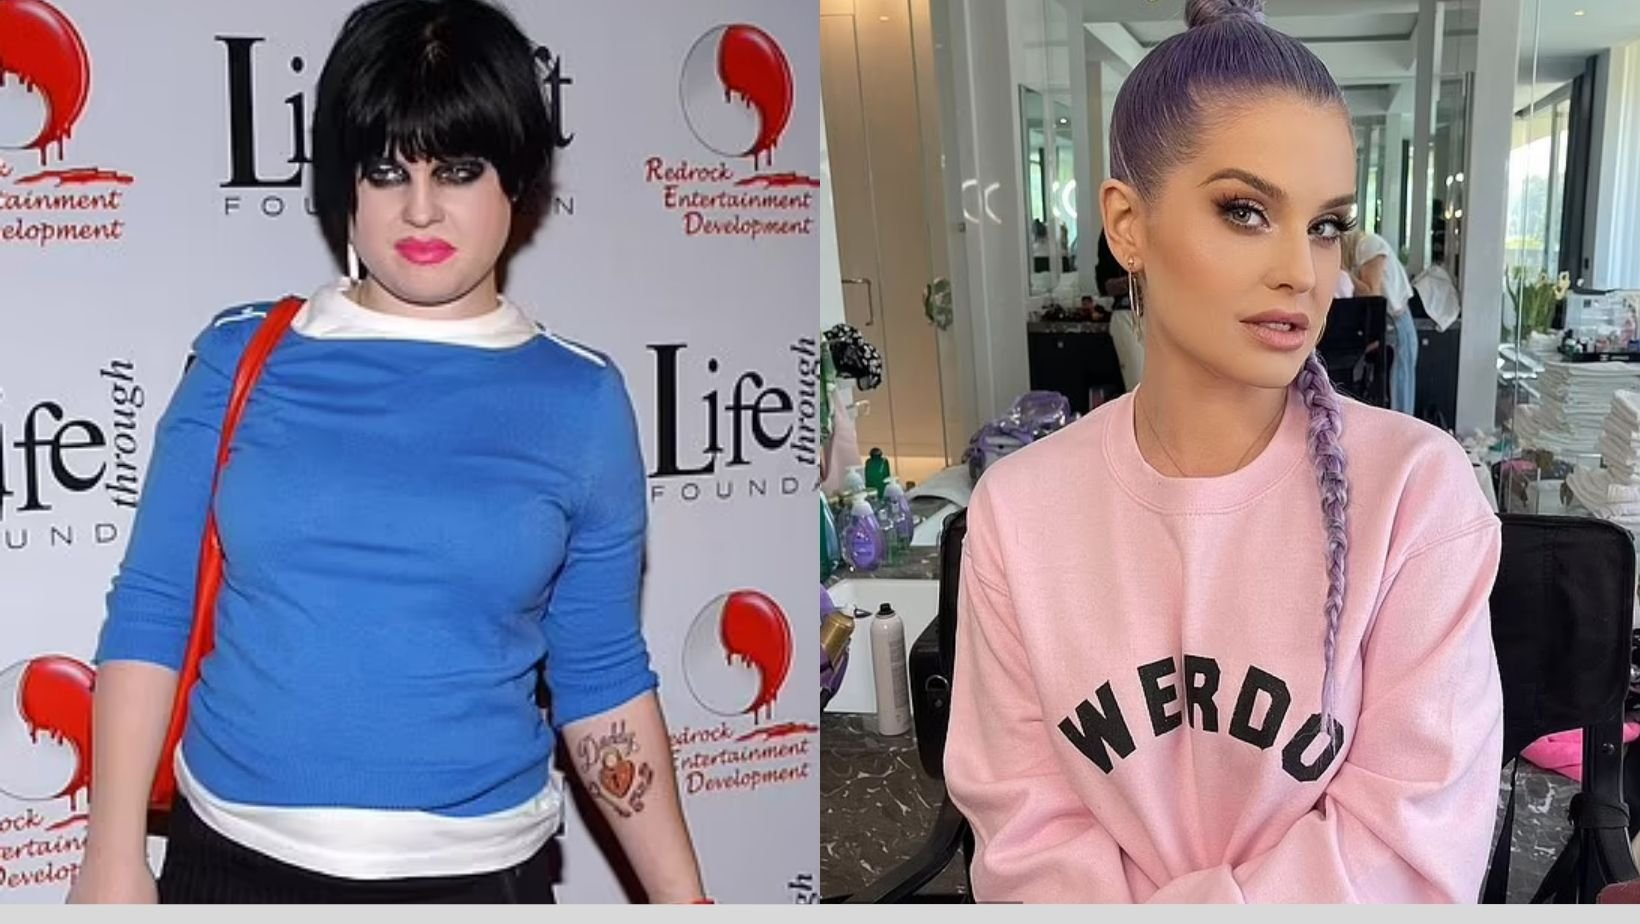 1 138.jpg?resize=412,232 - Kelly Osbourne Is Almost Unrecognizable After Showing Off Her Incredible Weight Loss Transformation